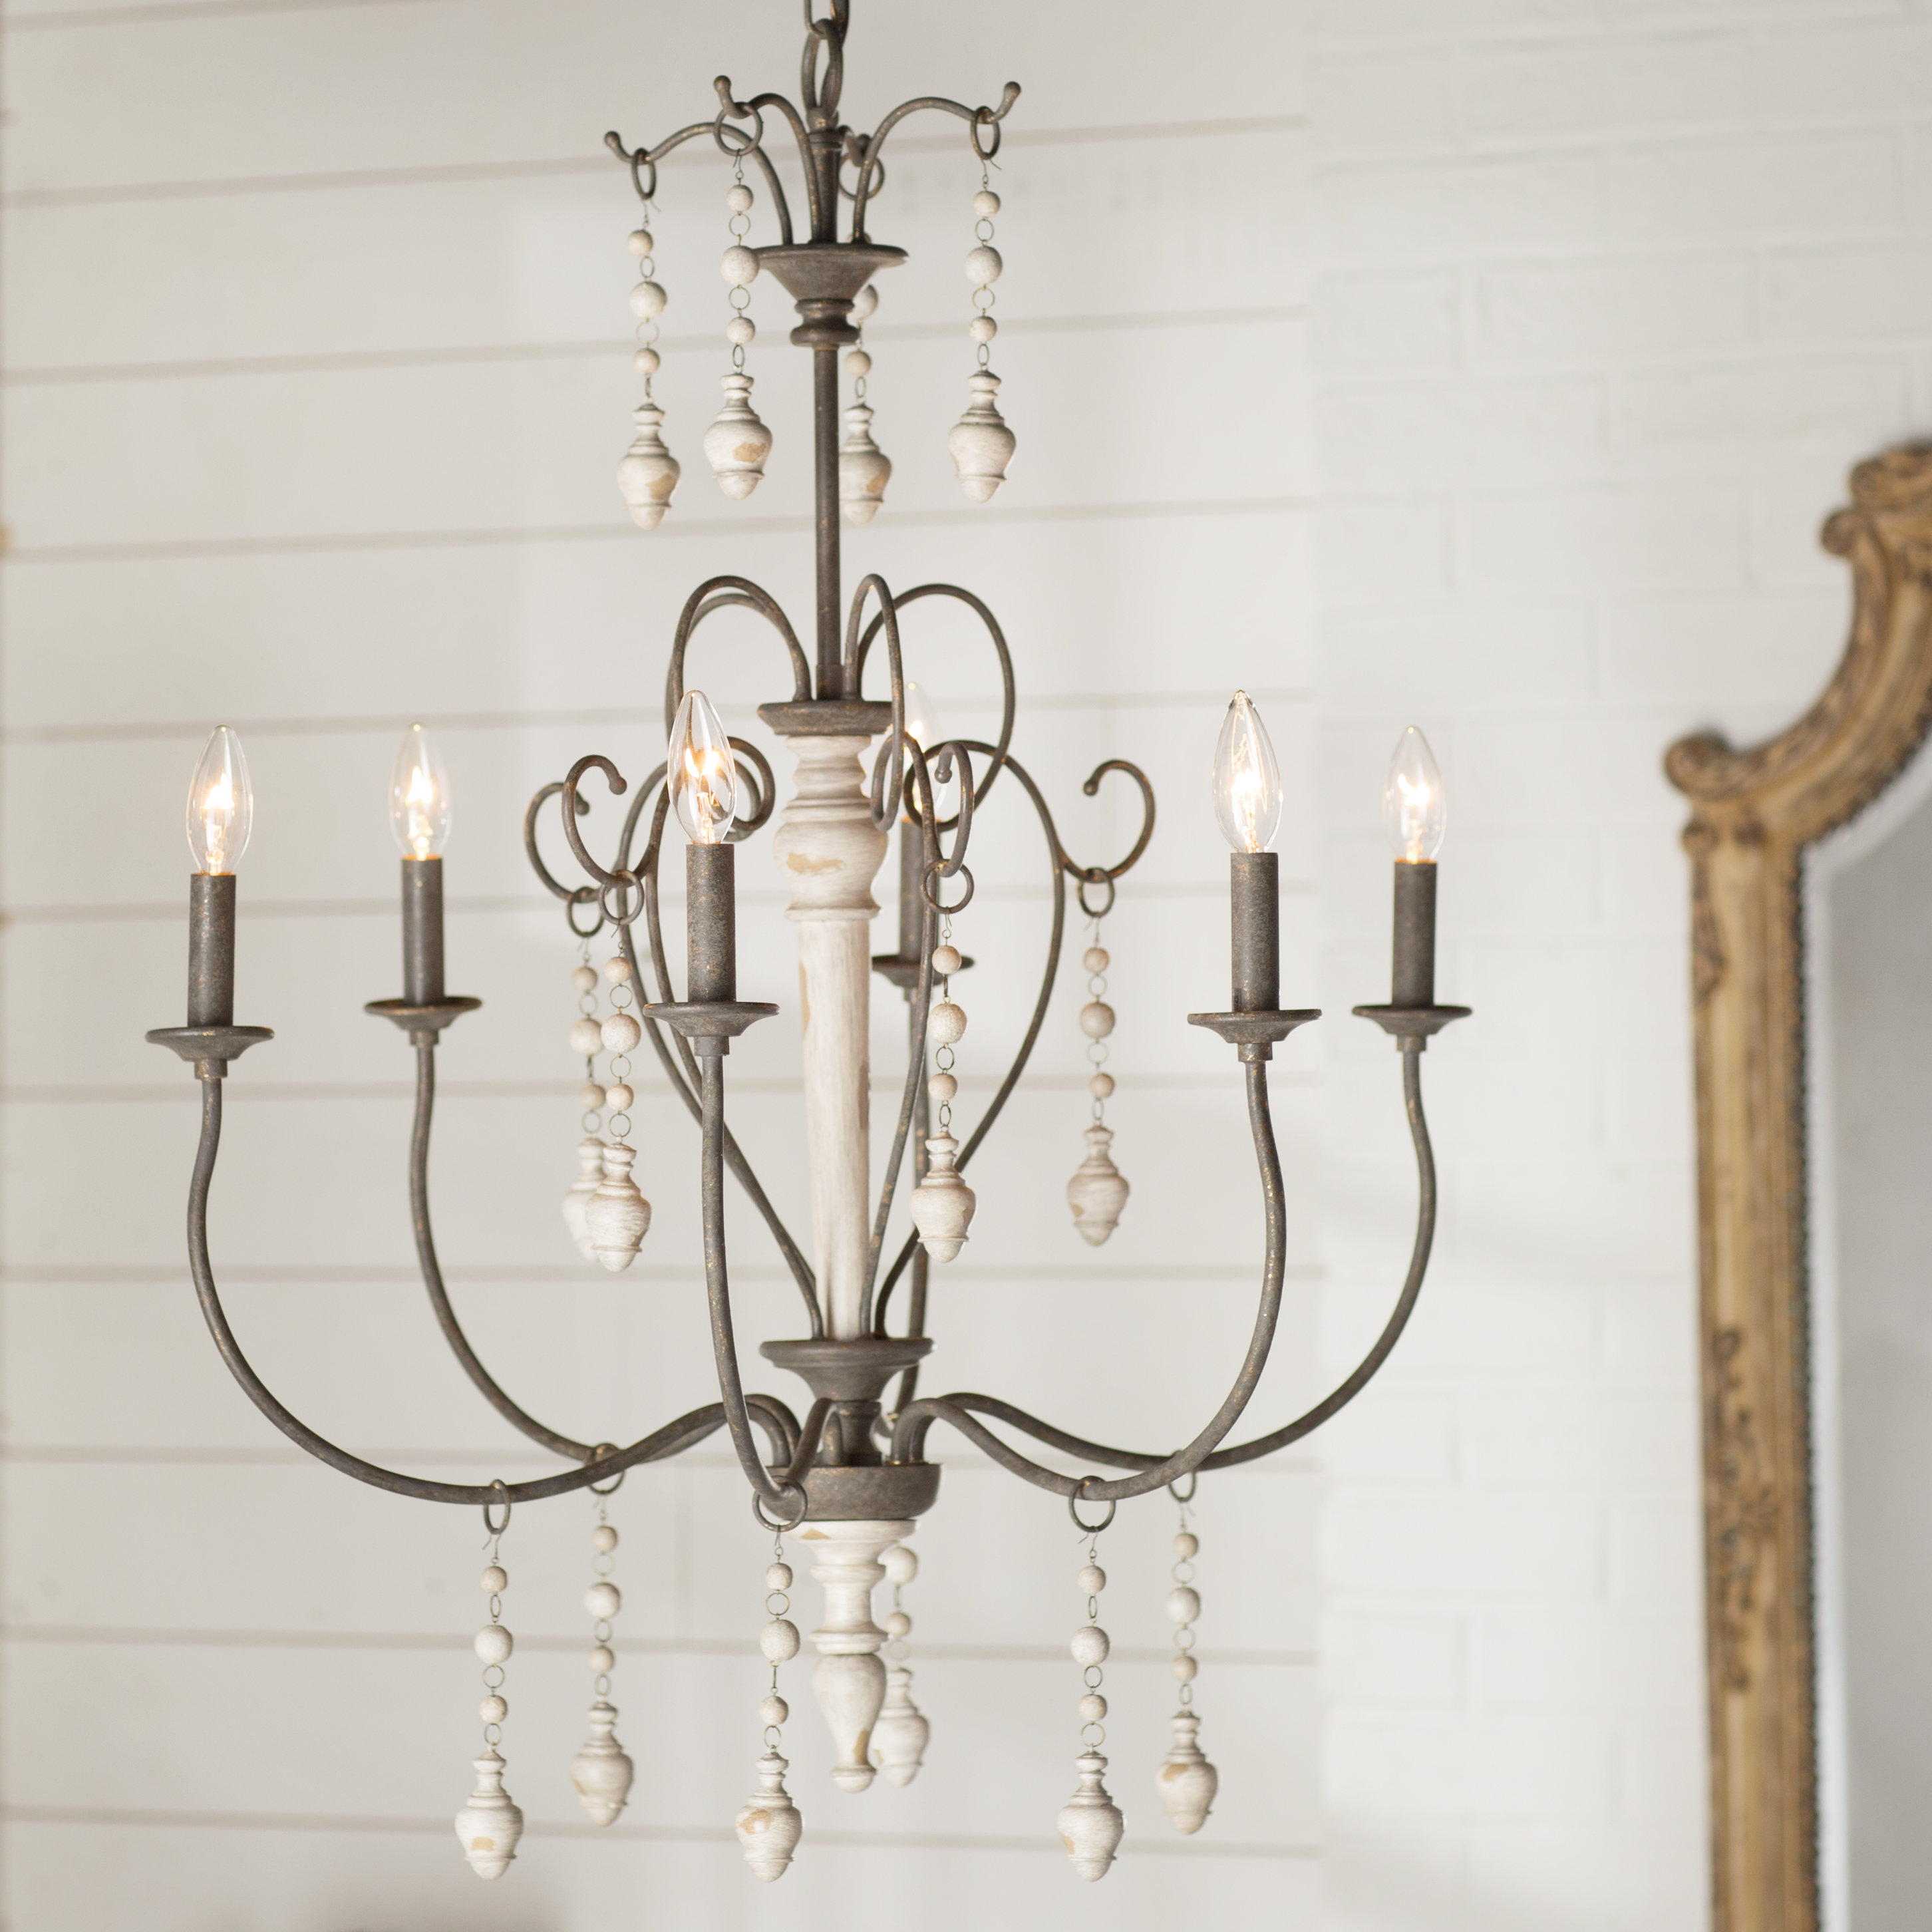 Trendy Shaylee 6 Light Candle Style Chandeliers Throughout Bouchette Traditional 6 Light Candle Style Chandelier (View 18 of 20)